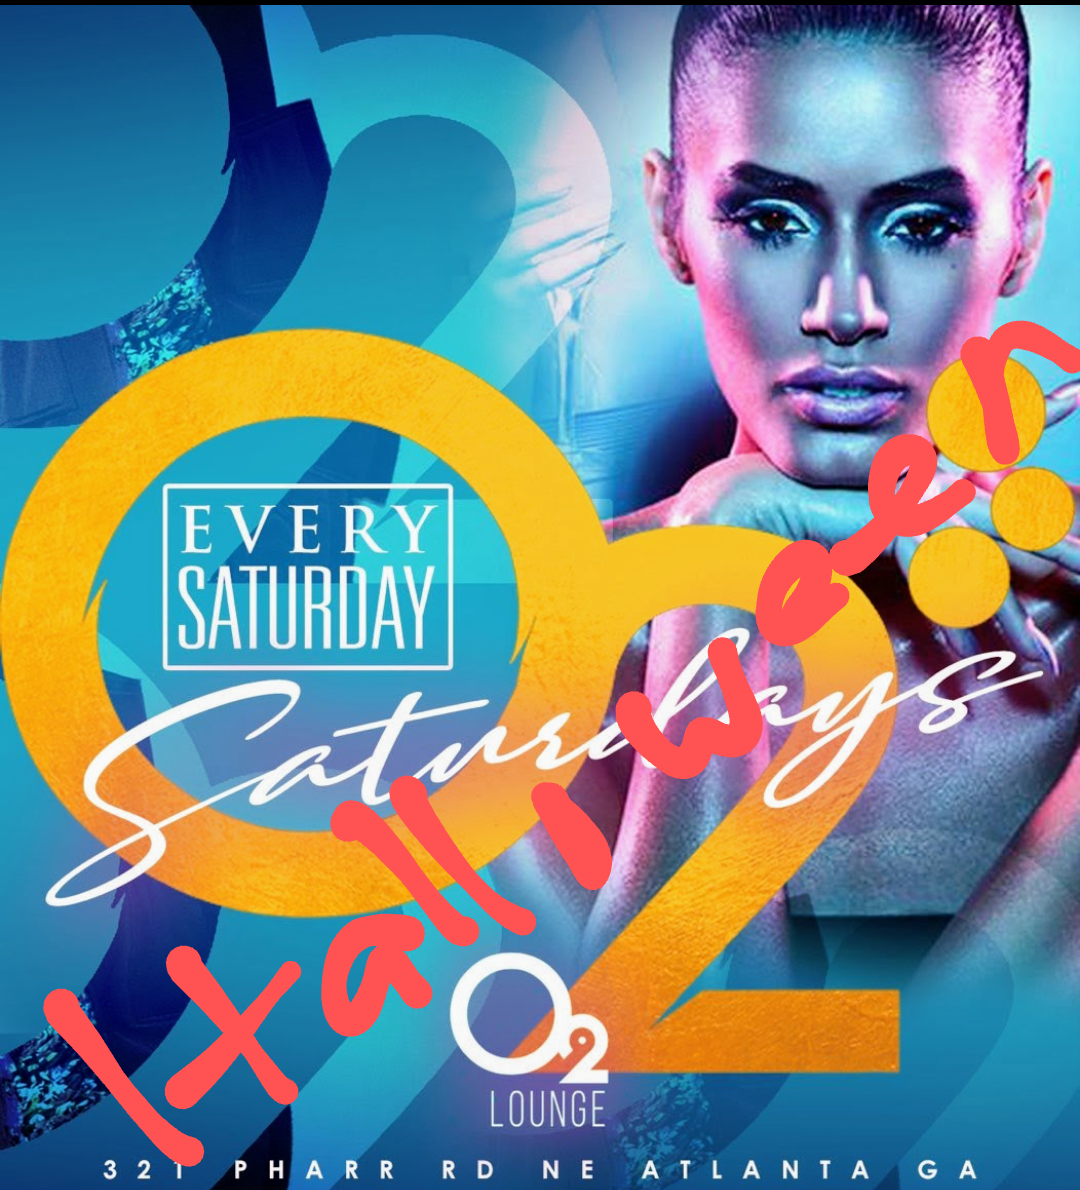 FREE BOTTLE when you call (678)310-5587 to prepay for a section